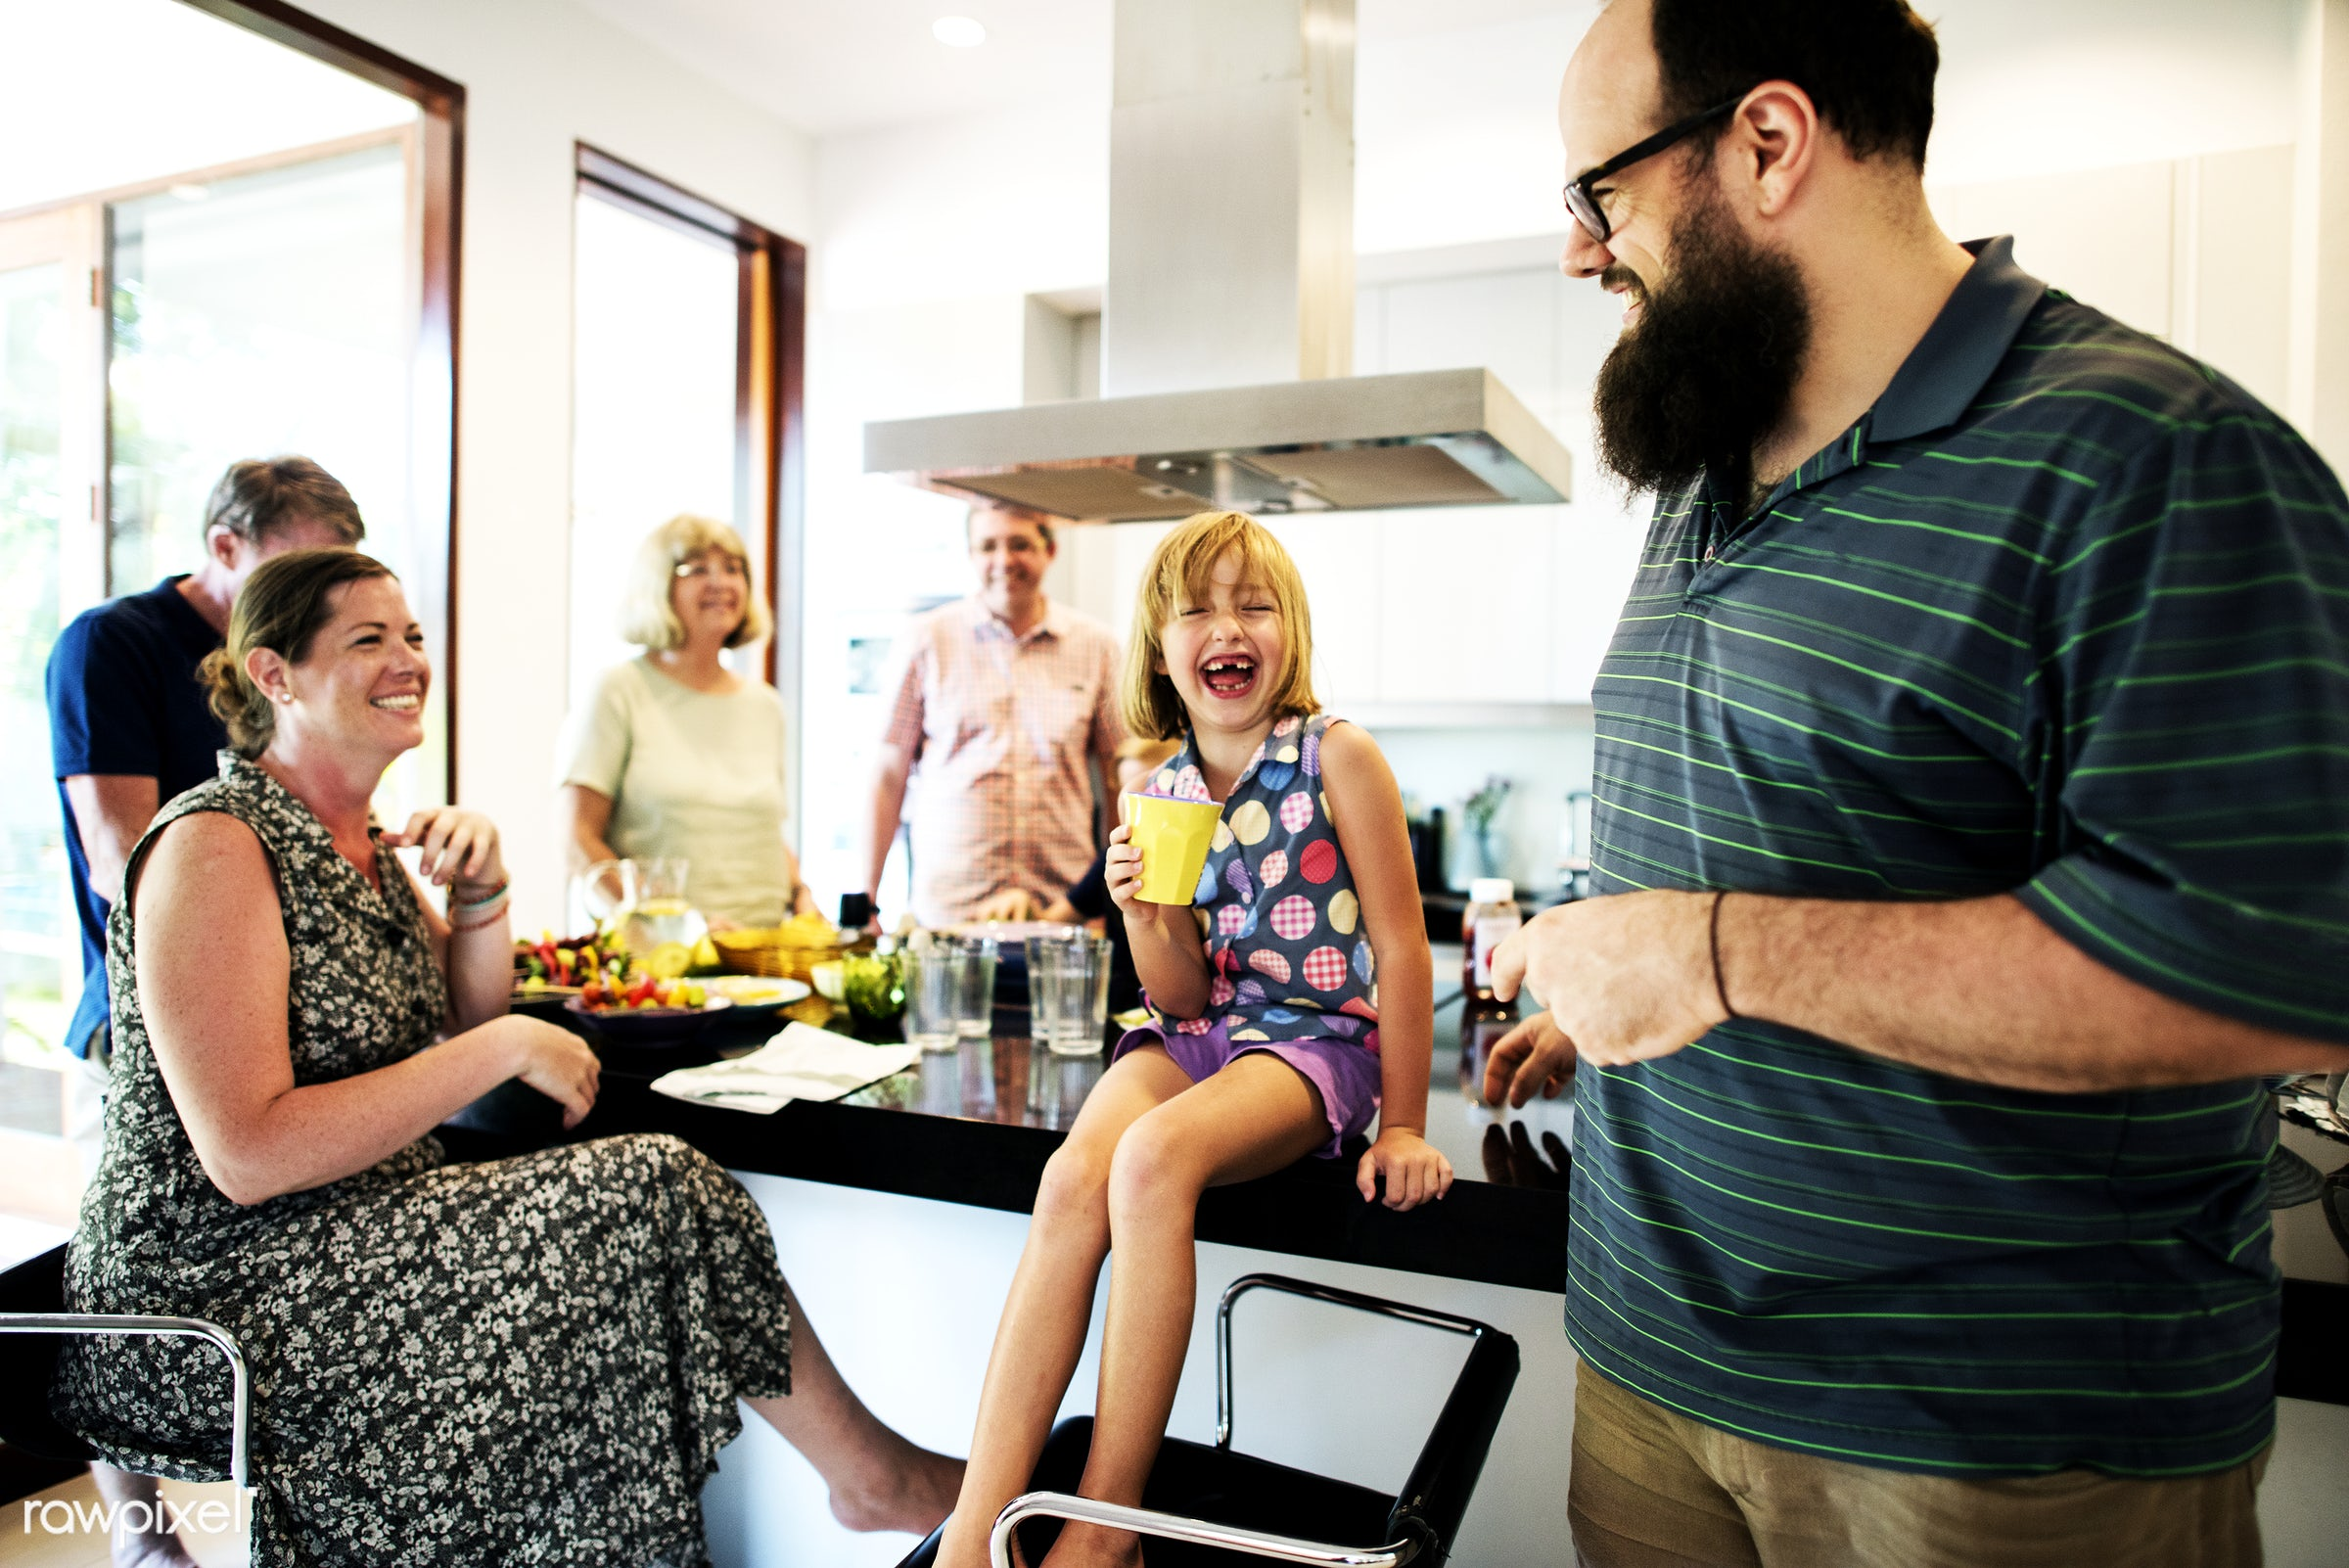 Group of cheerful people in the kitchen - adults, cheerful, child, diverse, enjoying, family, food, fun, generations, girl,...